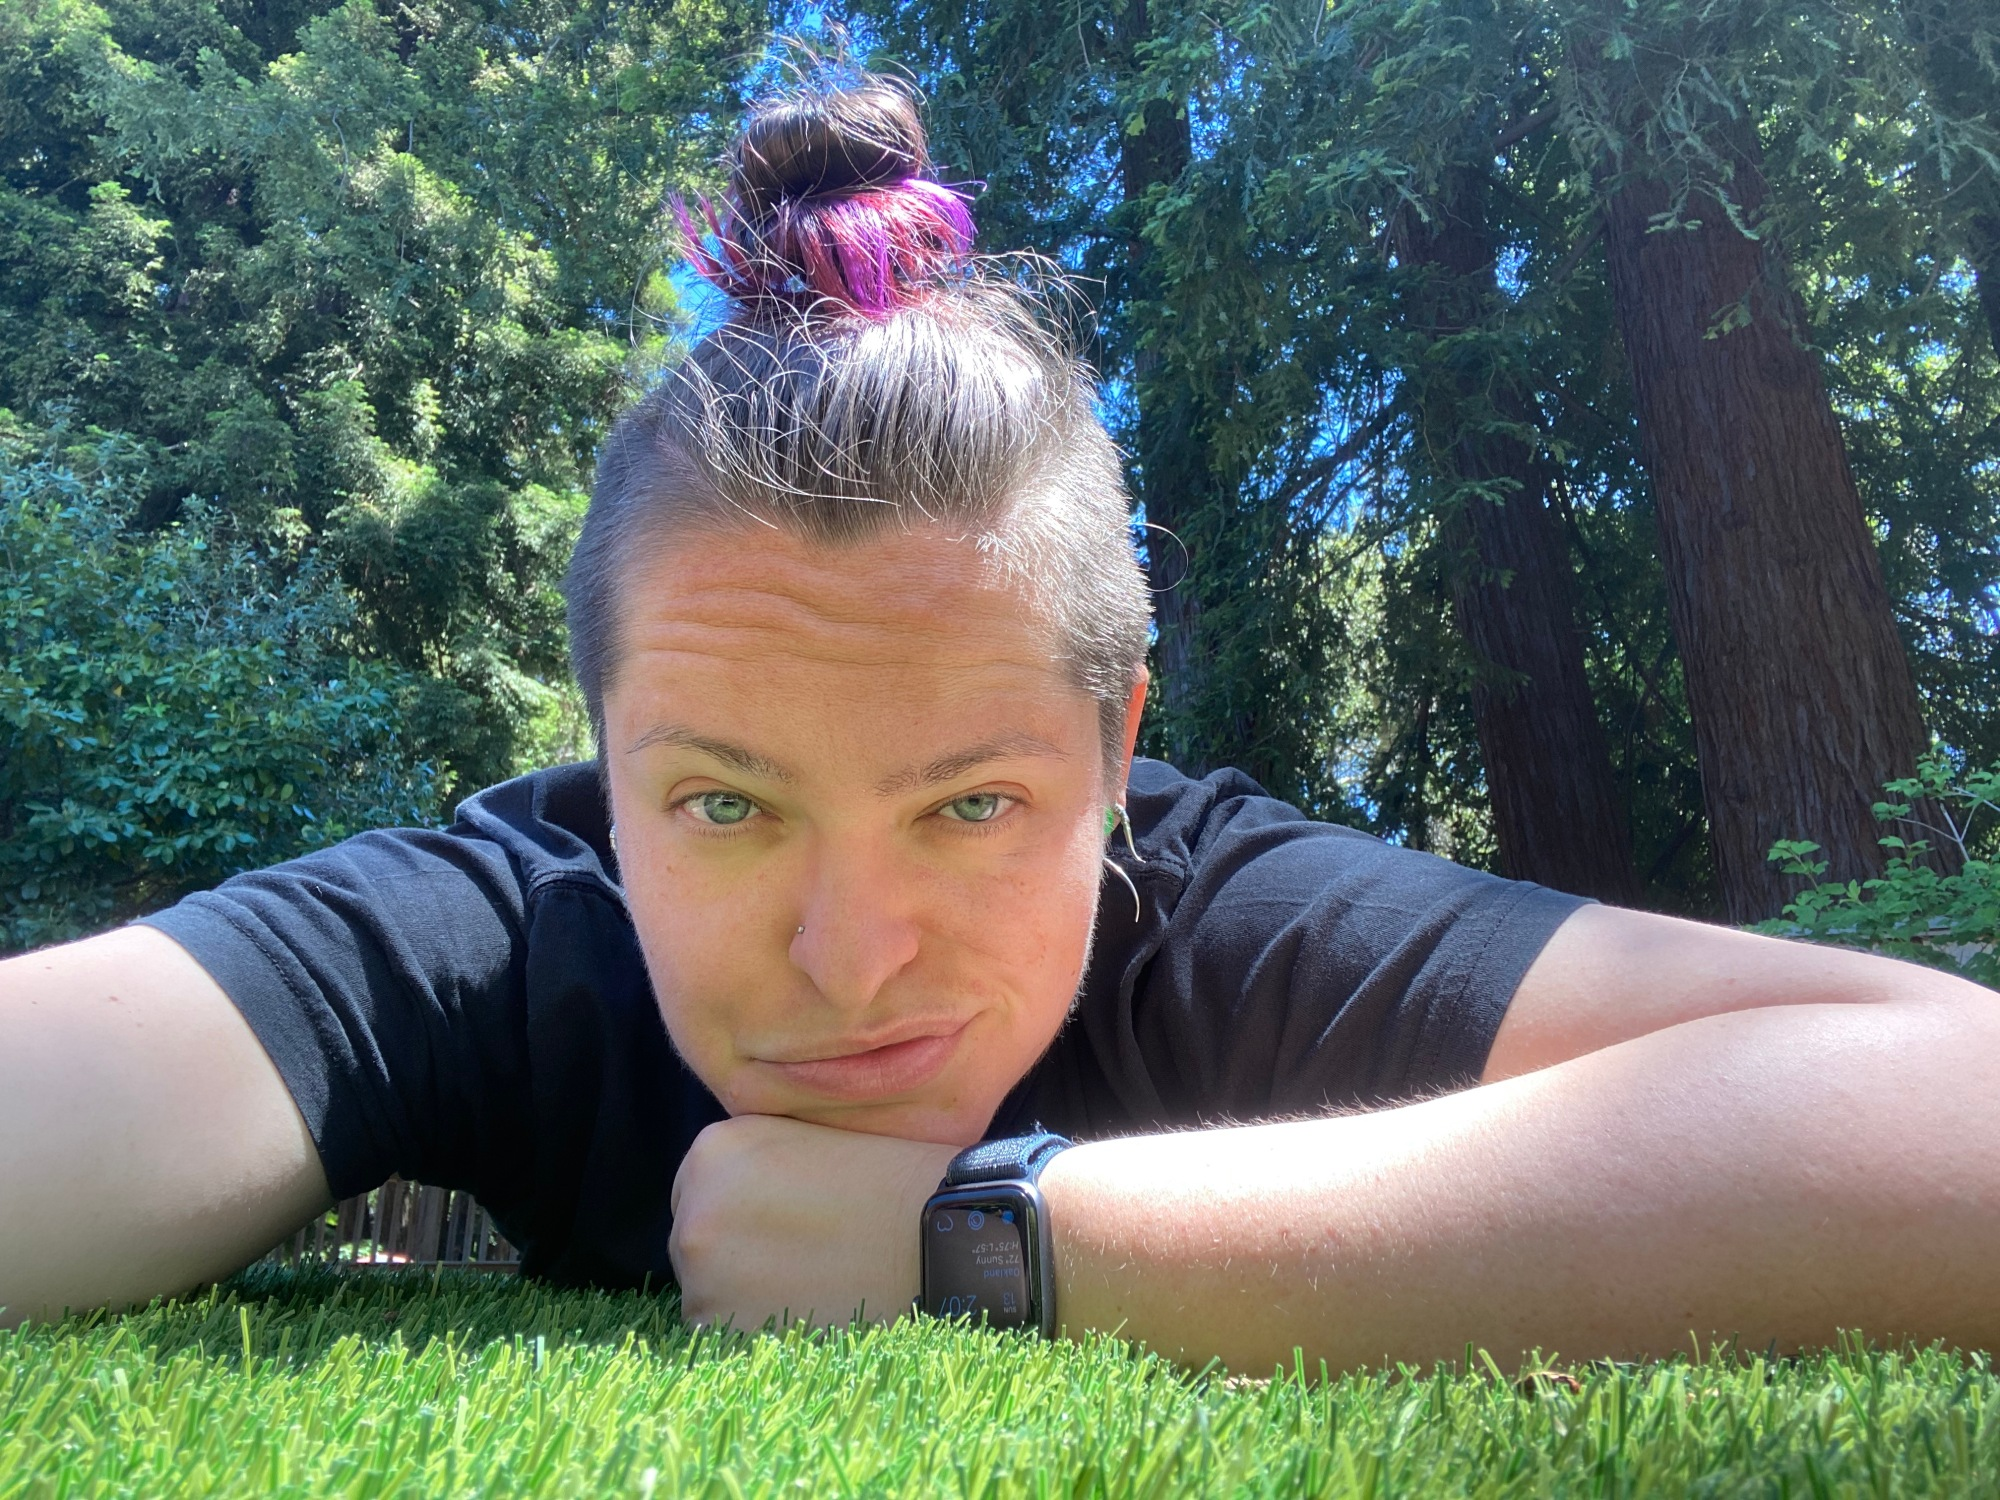 A white non-binary person lays on grass and looks directly into the camera.